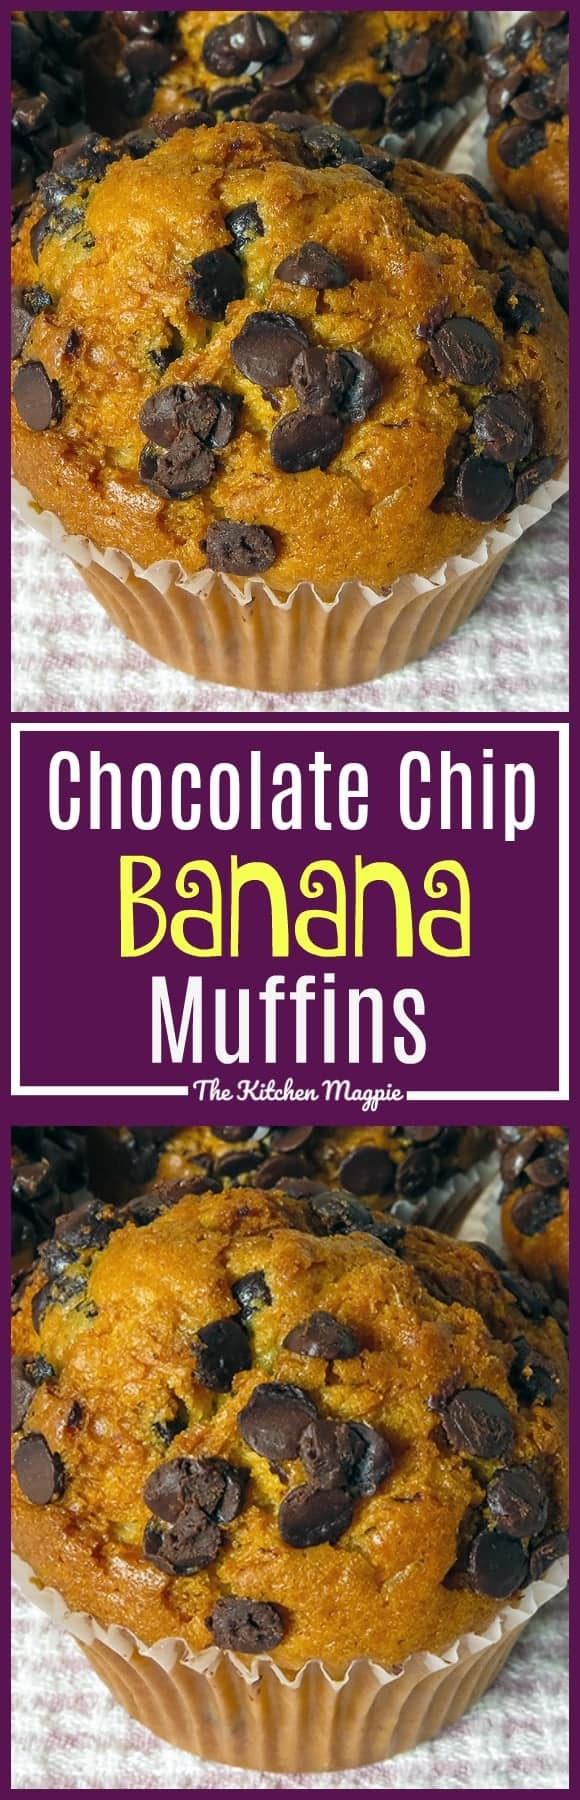 Chocolate Chip Banana Muffins are a fabulous way to use up those bananas on your kitchen counter or in your freezer! Kids and adults alike love these muffins!  Recipe from @kitchenmagpie. #muffins #banana #chocolatechip #recipe